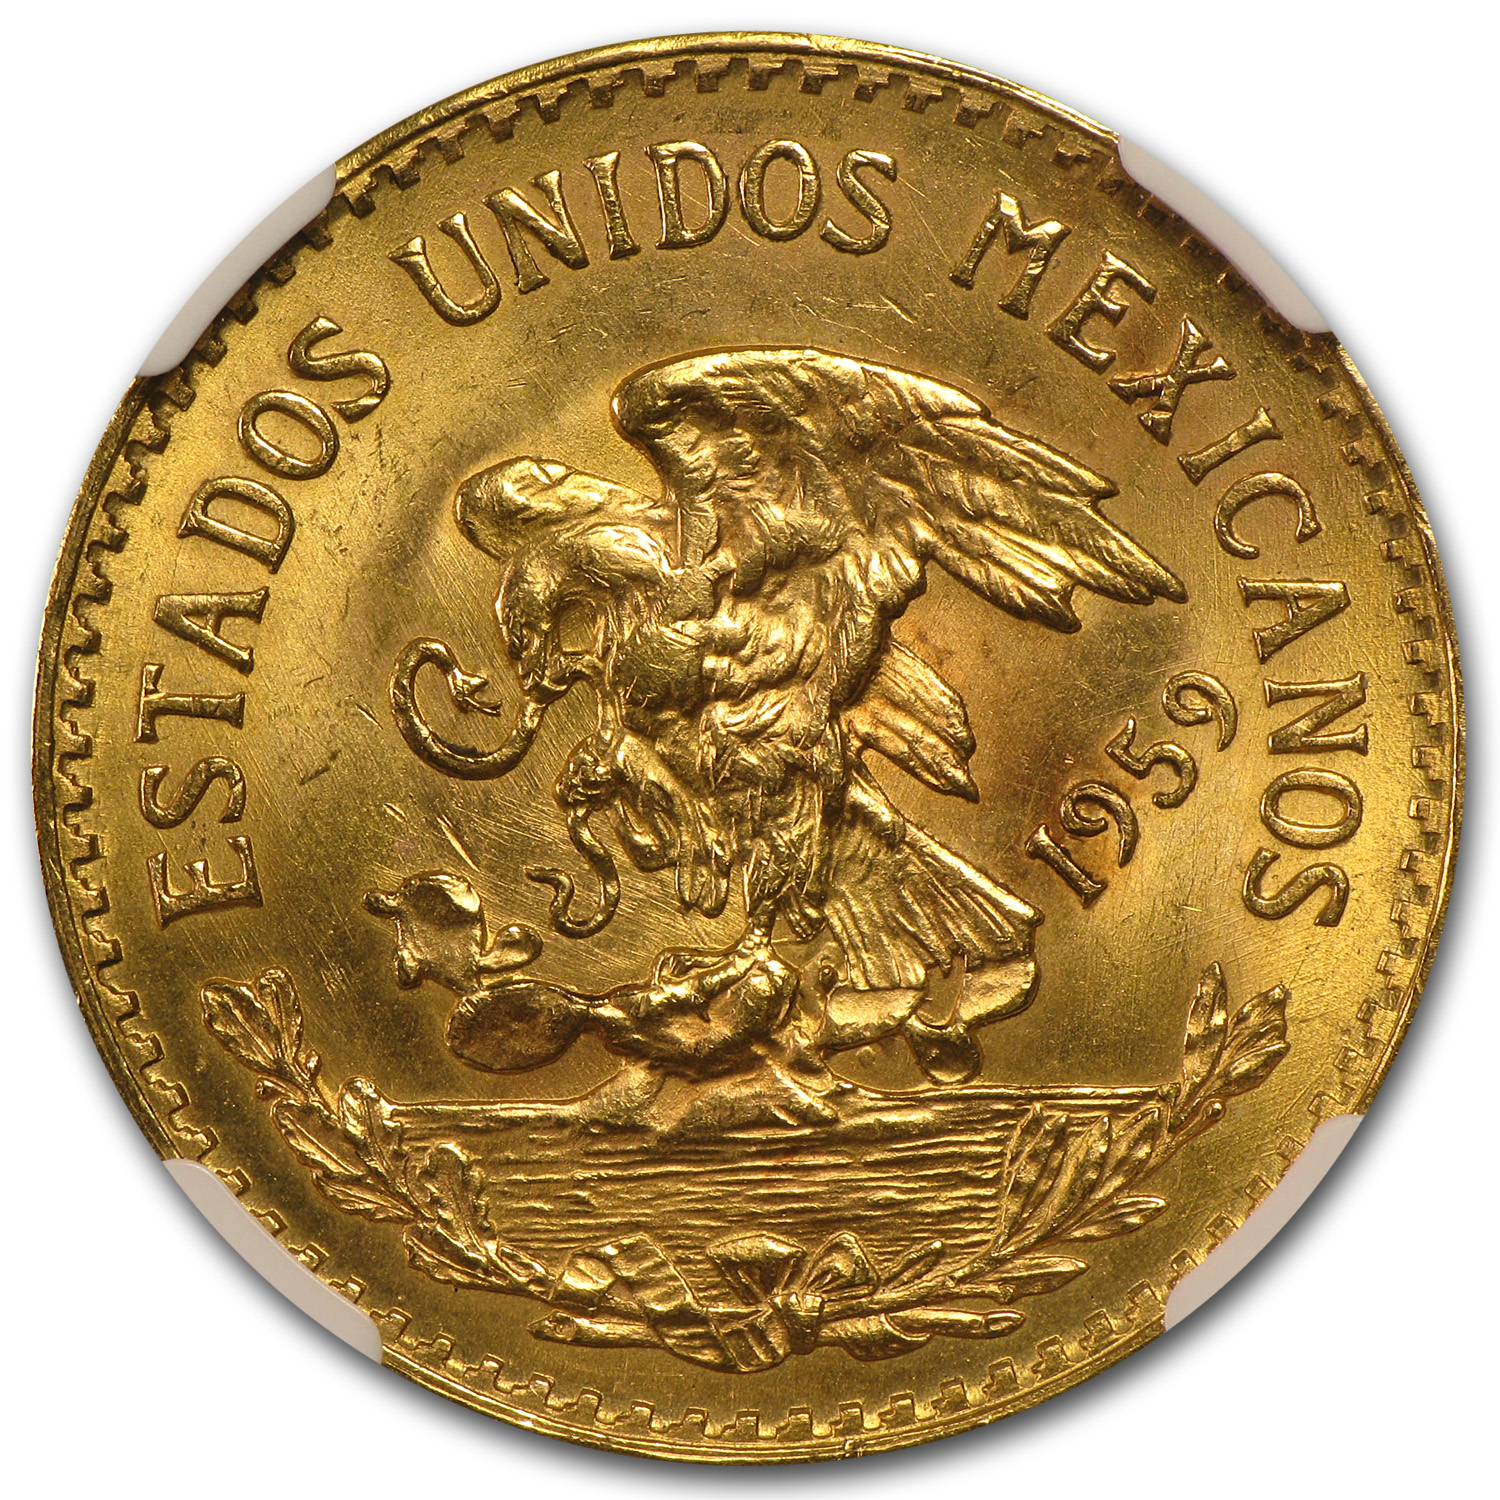 Mexico 1959 20 Pesos Gold MS-63 NGC (Struck Thru)